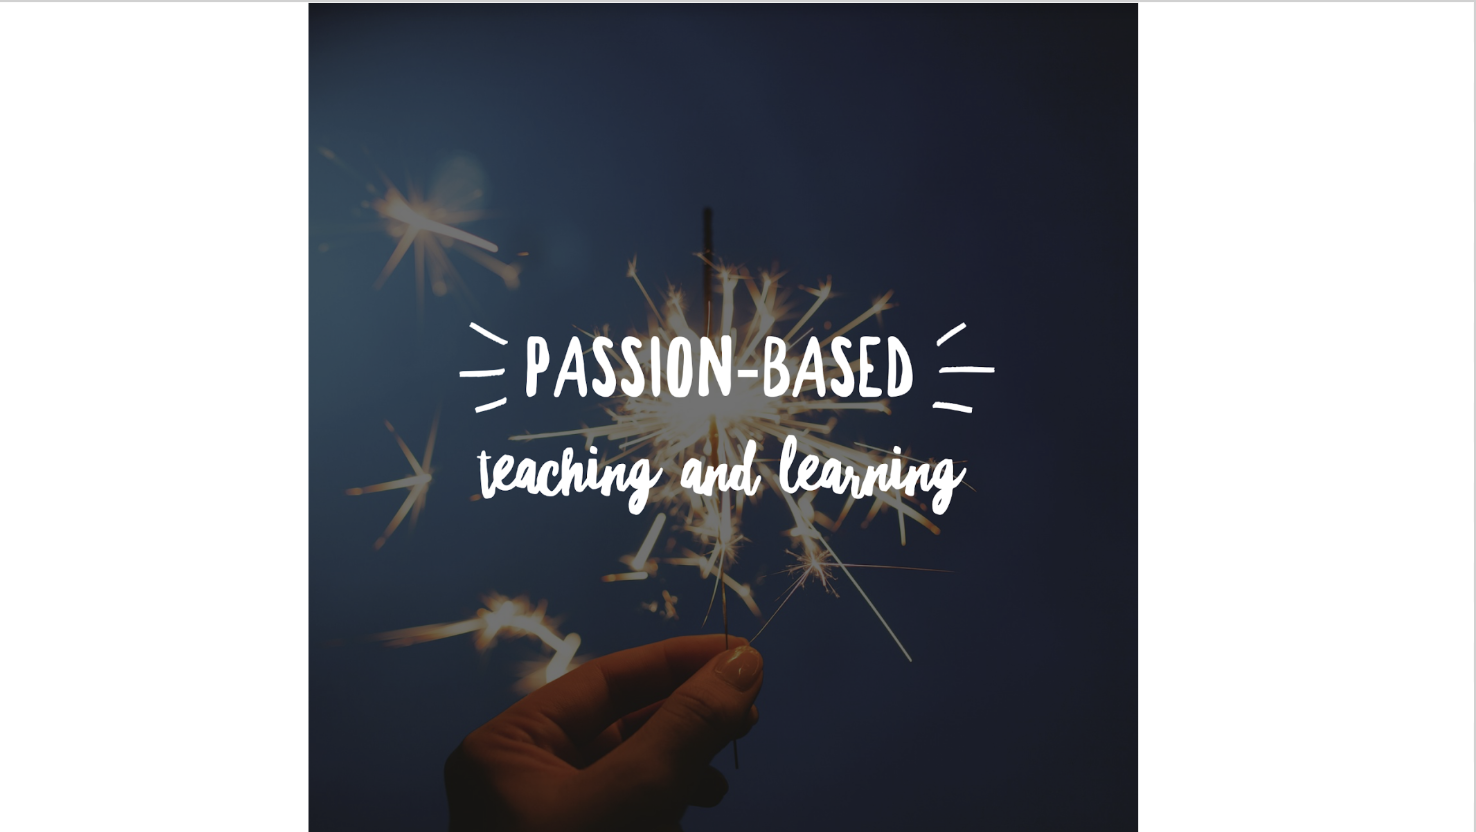 Passion-Based Teaching and Learning